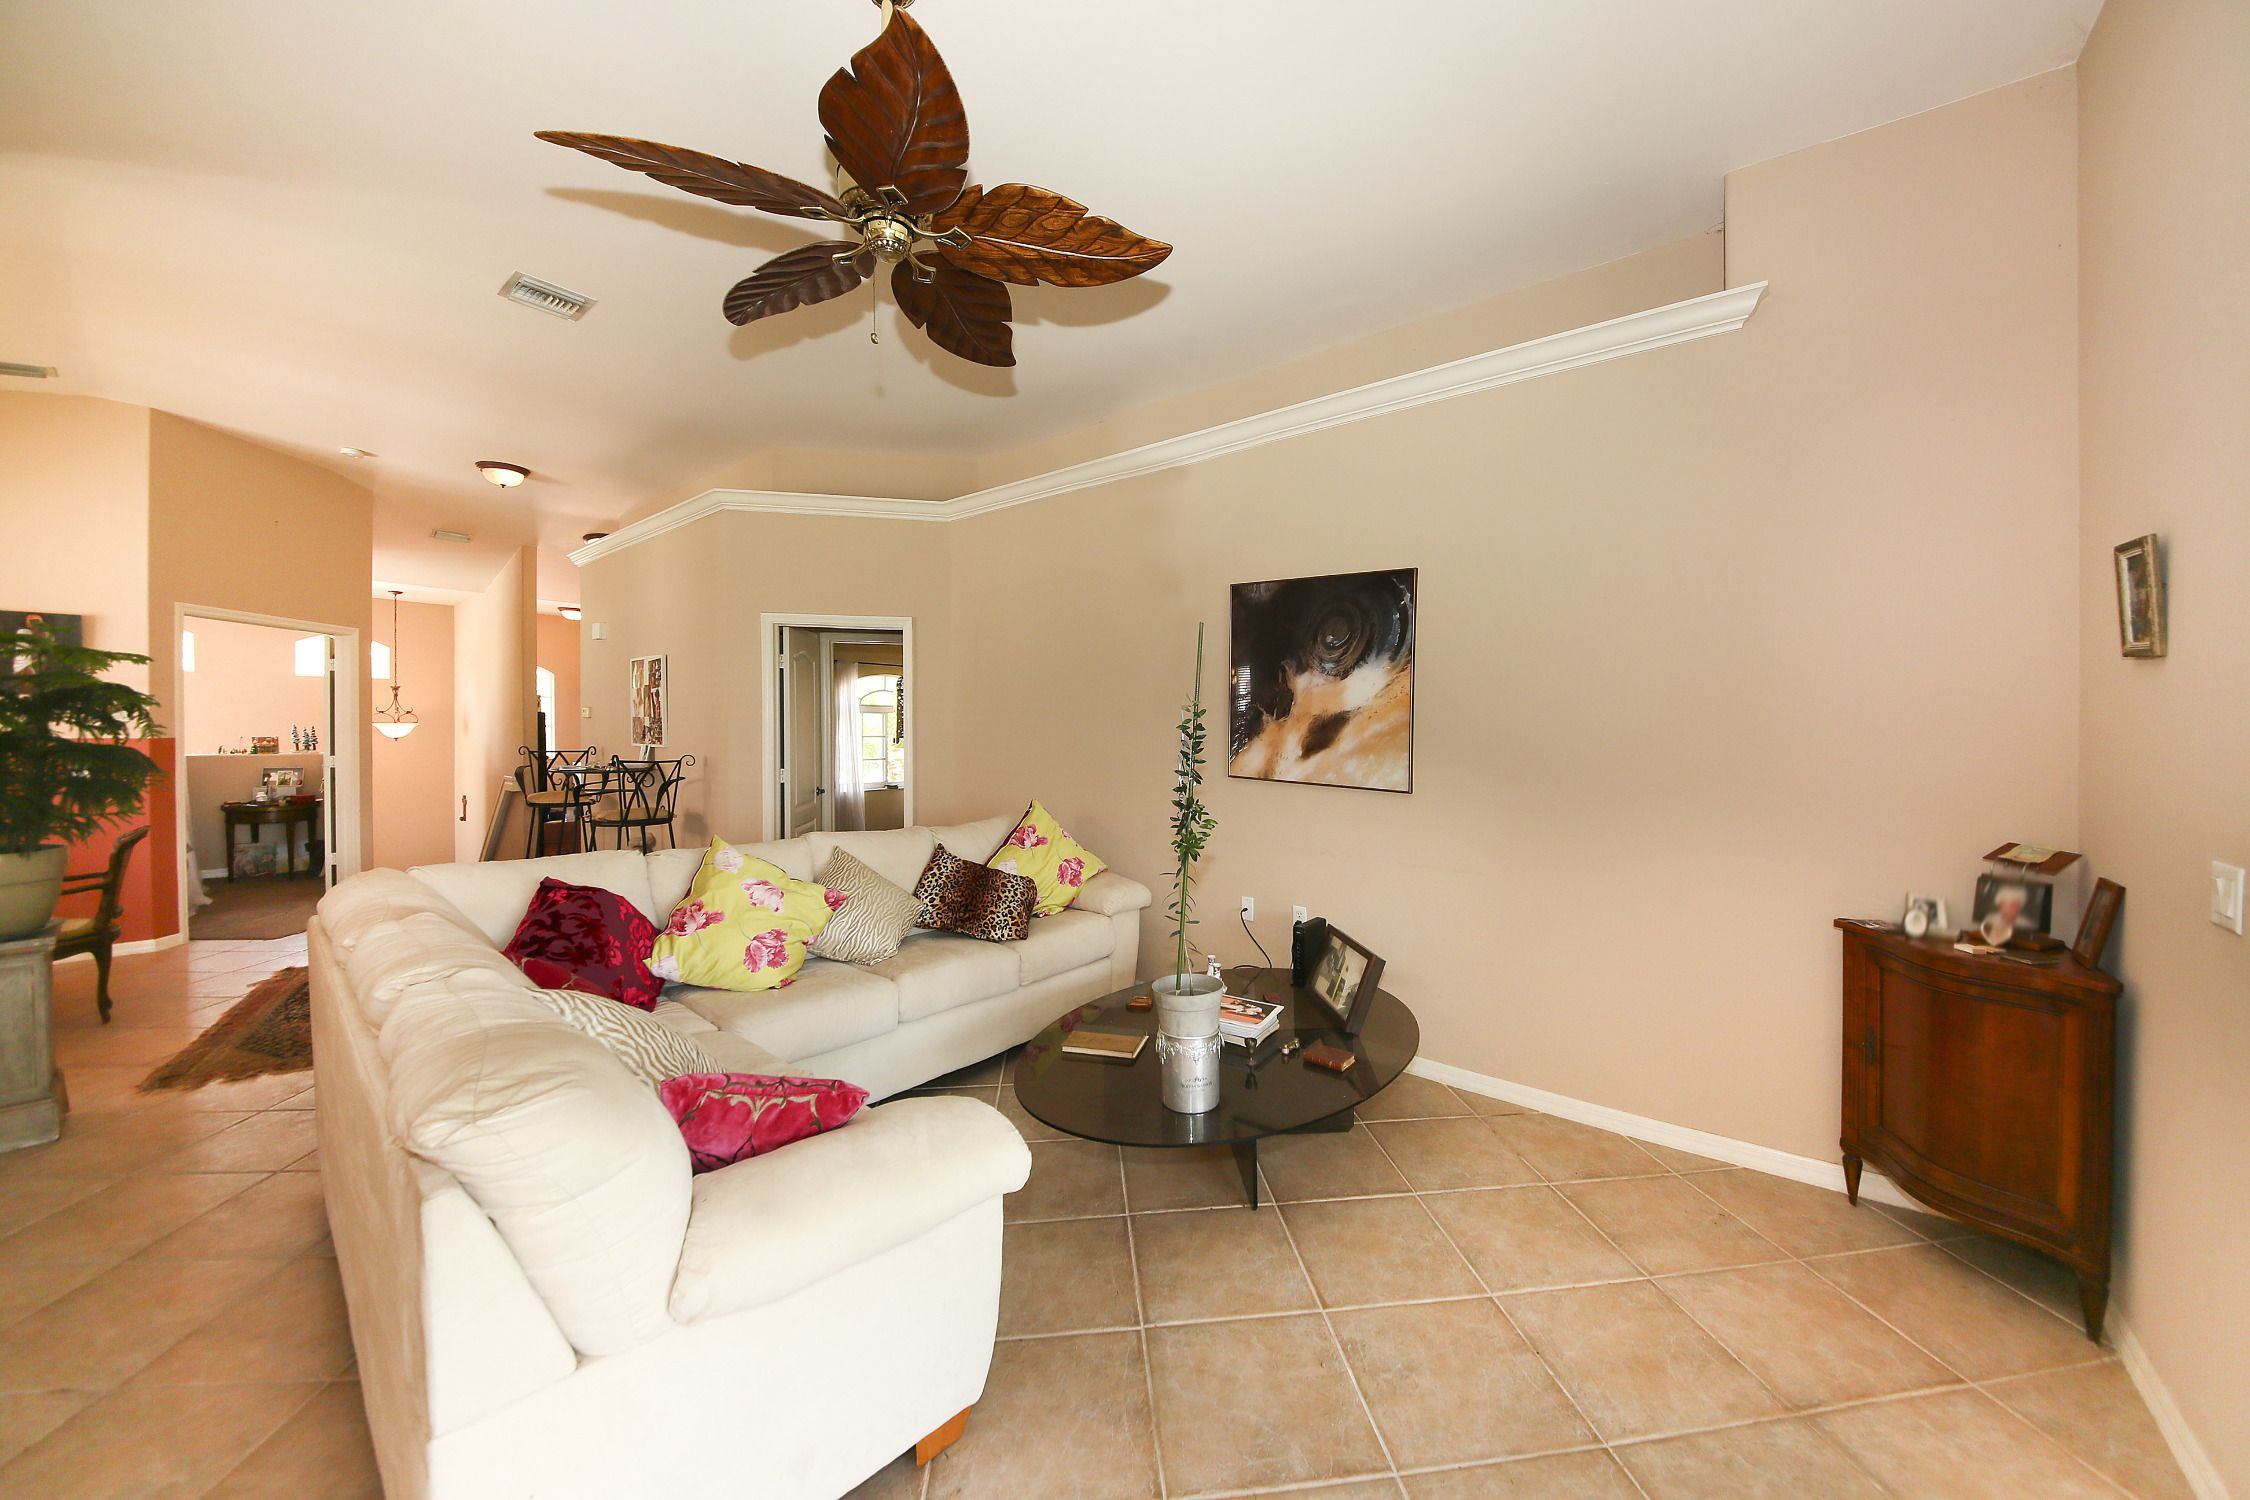 Living room area. | Room, Real estate agent, Workout rooms